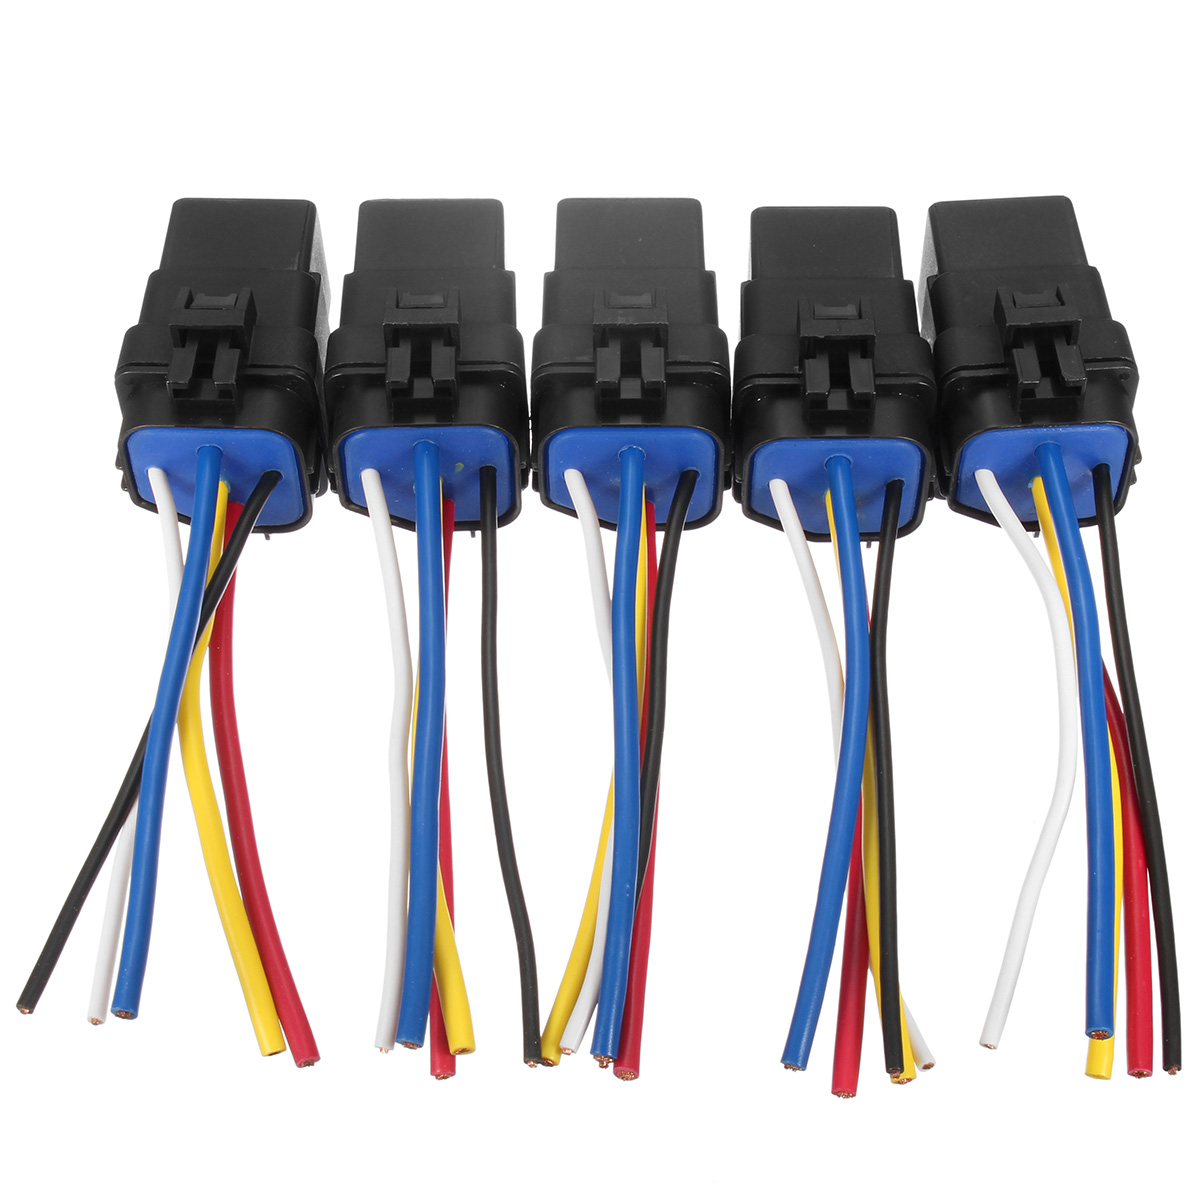 US $18.74 36% OFF|5x Automotive Car Relay Switch Harness 5Pin SPDT on